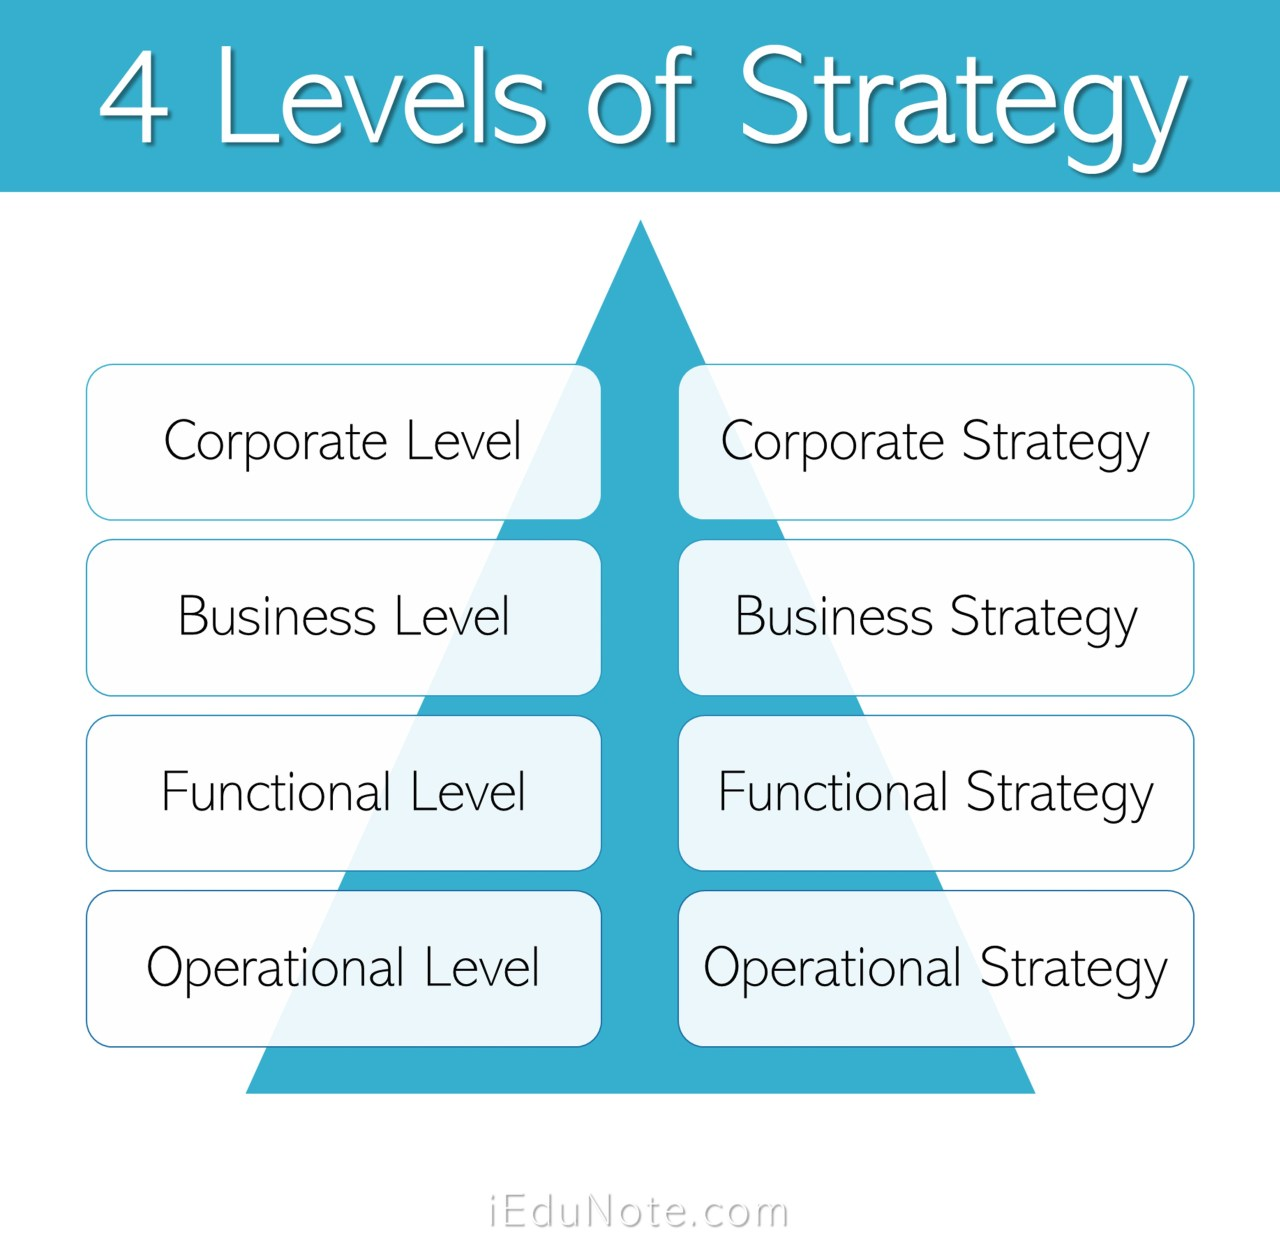 4 Levels of Strategy-Making